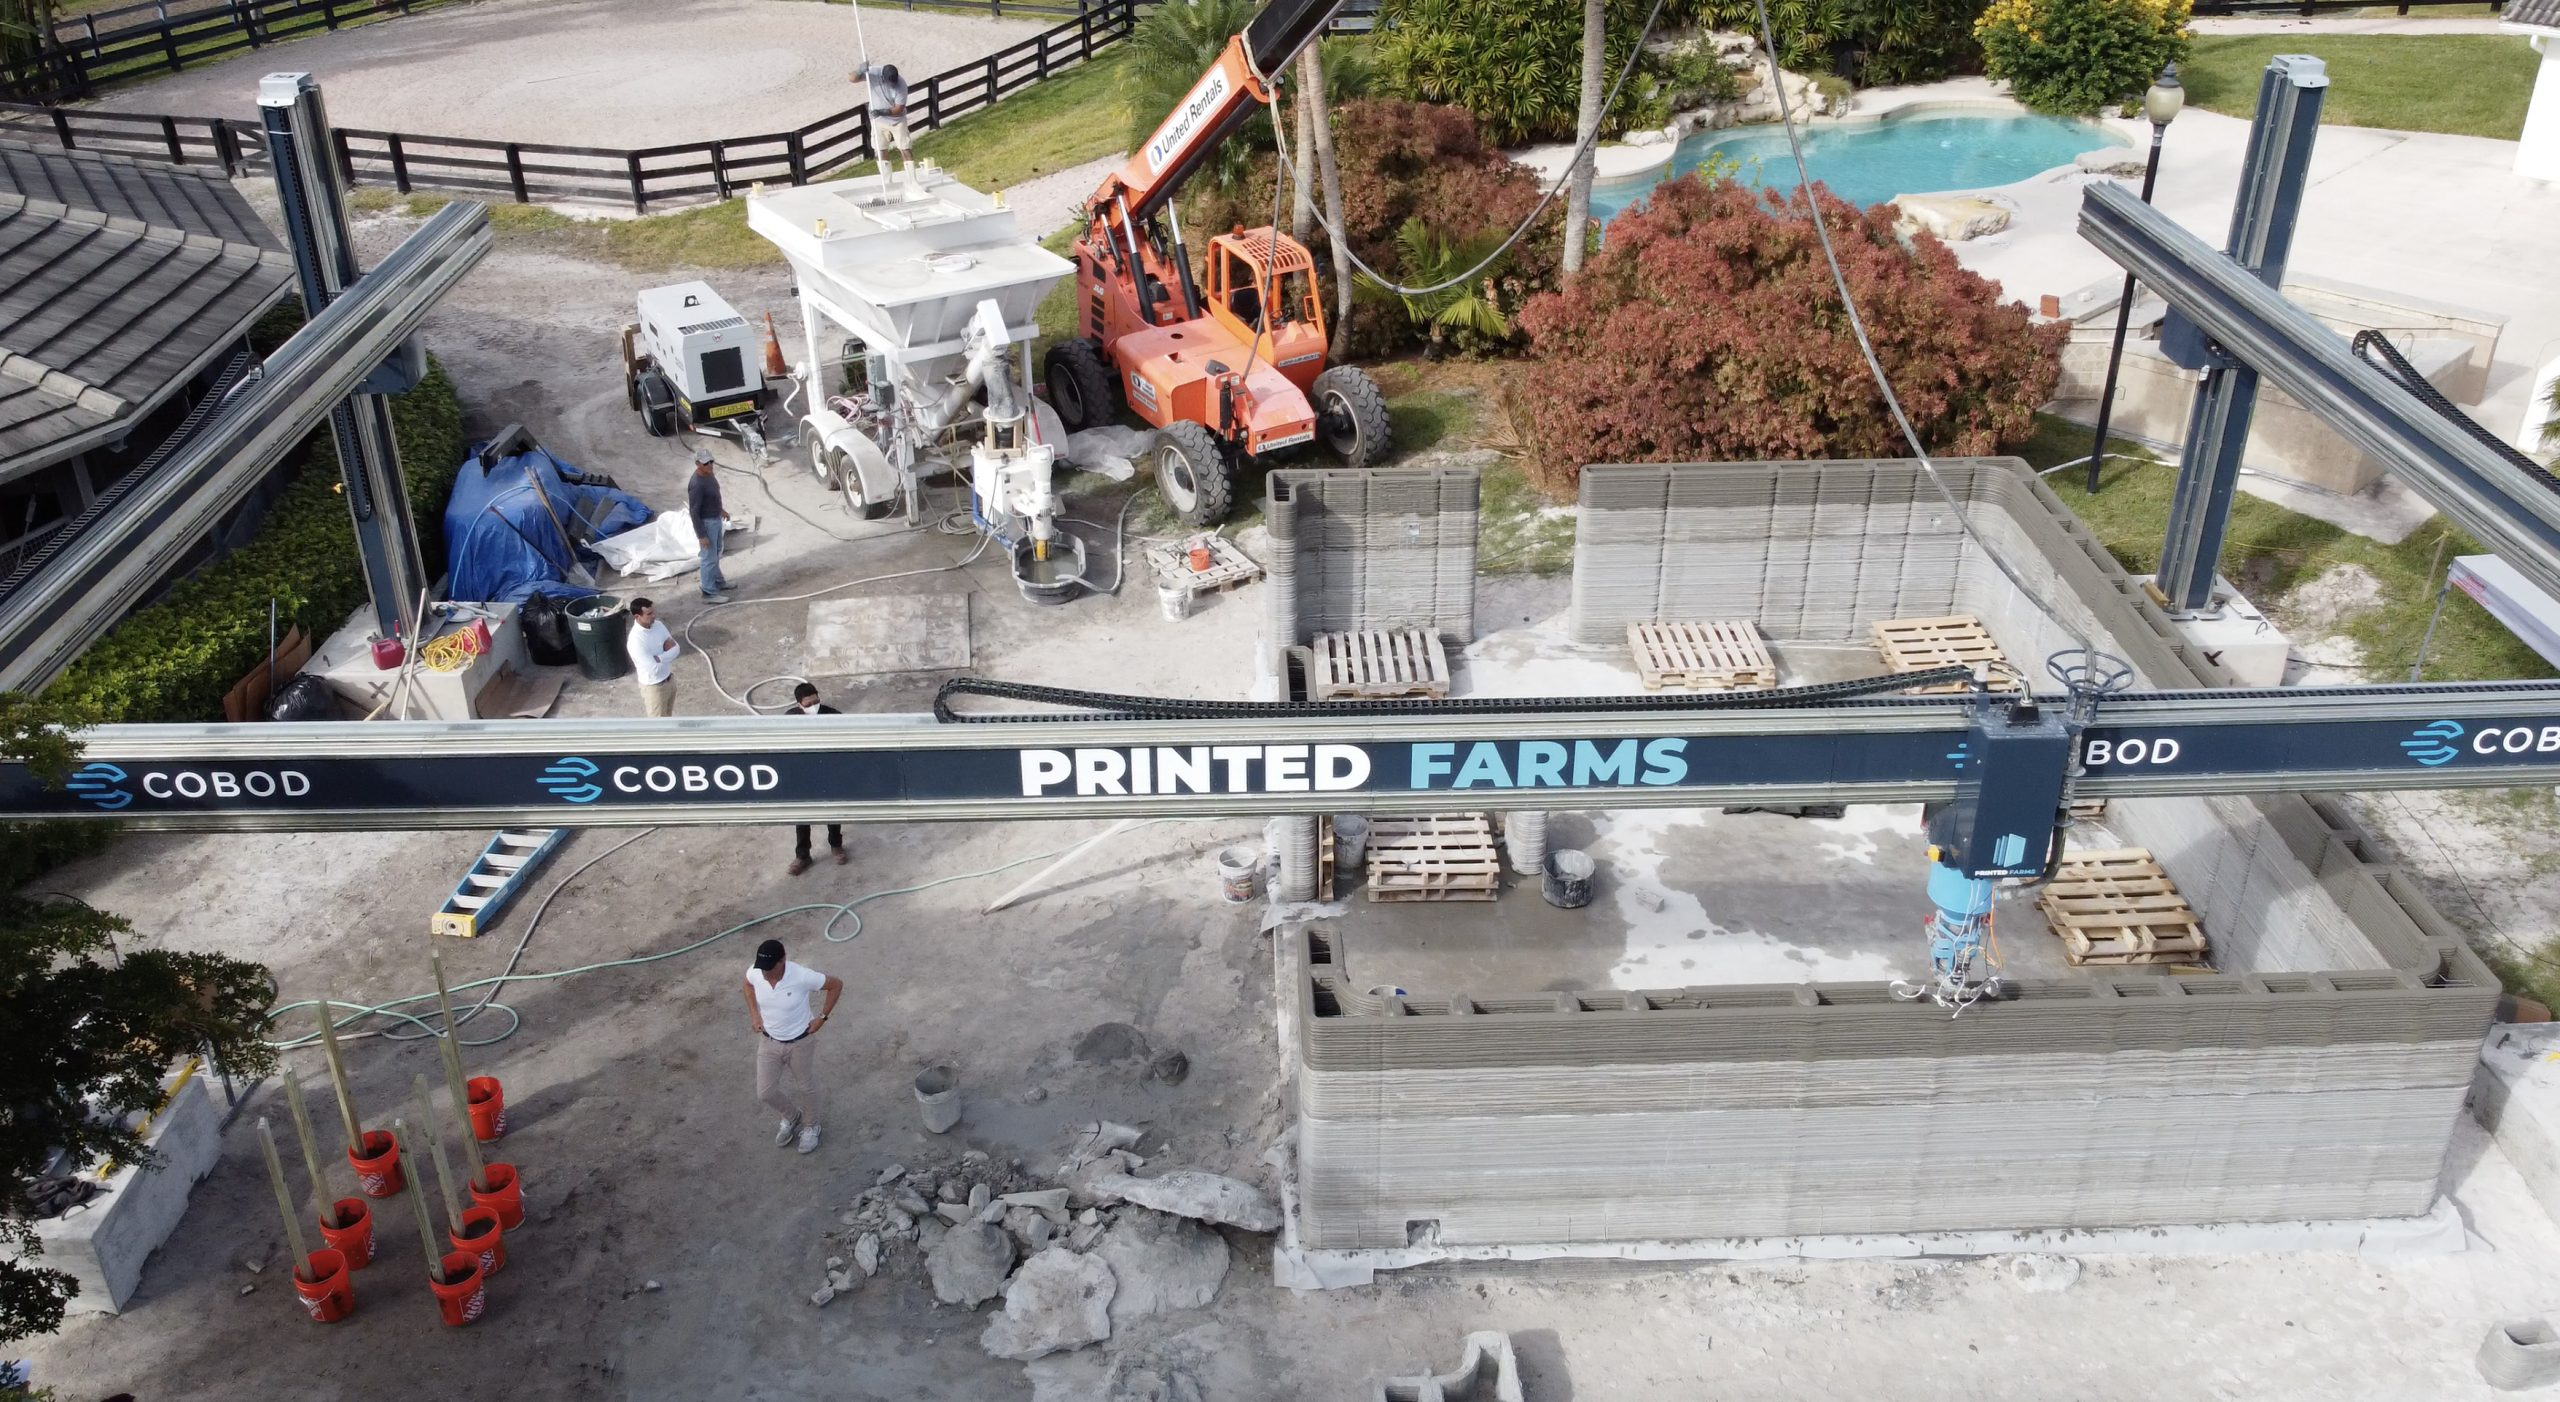 Printed Farms concrete 3D printing site in Florida